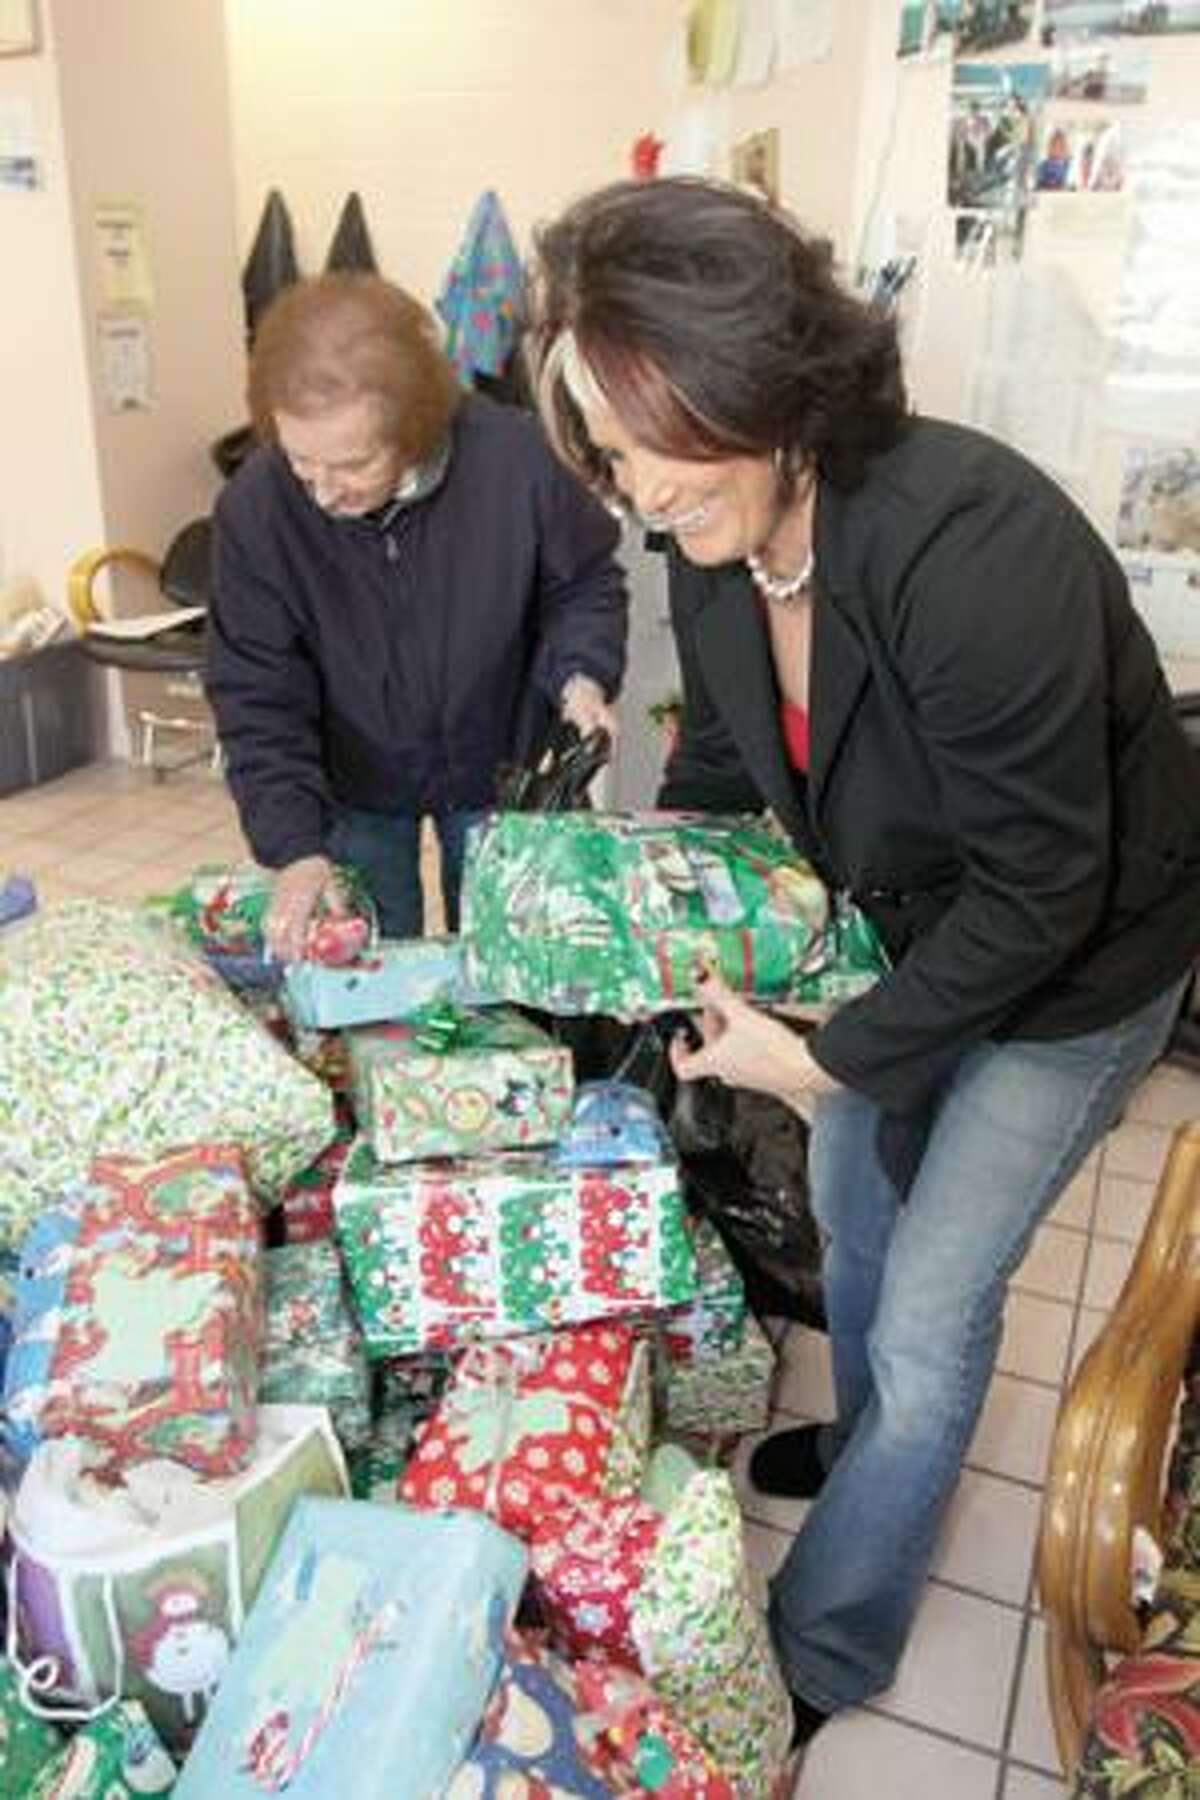 SONJA ZINKE/Register CitizenRight, Susan Gagnon, owner of Hair Dr. on East Main Street in Torrington, helps Special Events Coordinator for Torrington Area Youth Service Bureau Joyce Reilly pack up presents from under the wish tree at the salon. Hair Dr. hosted the wish tree with 150 wishes for gifts from area children which were filled by customers at the salon. Purchase a glossy print of this photo and more at www.registercitizen.com